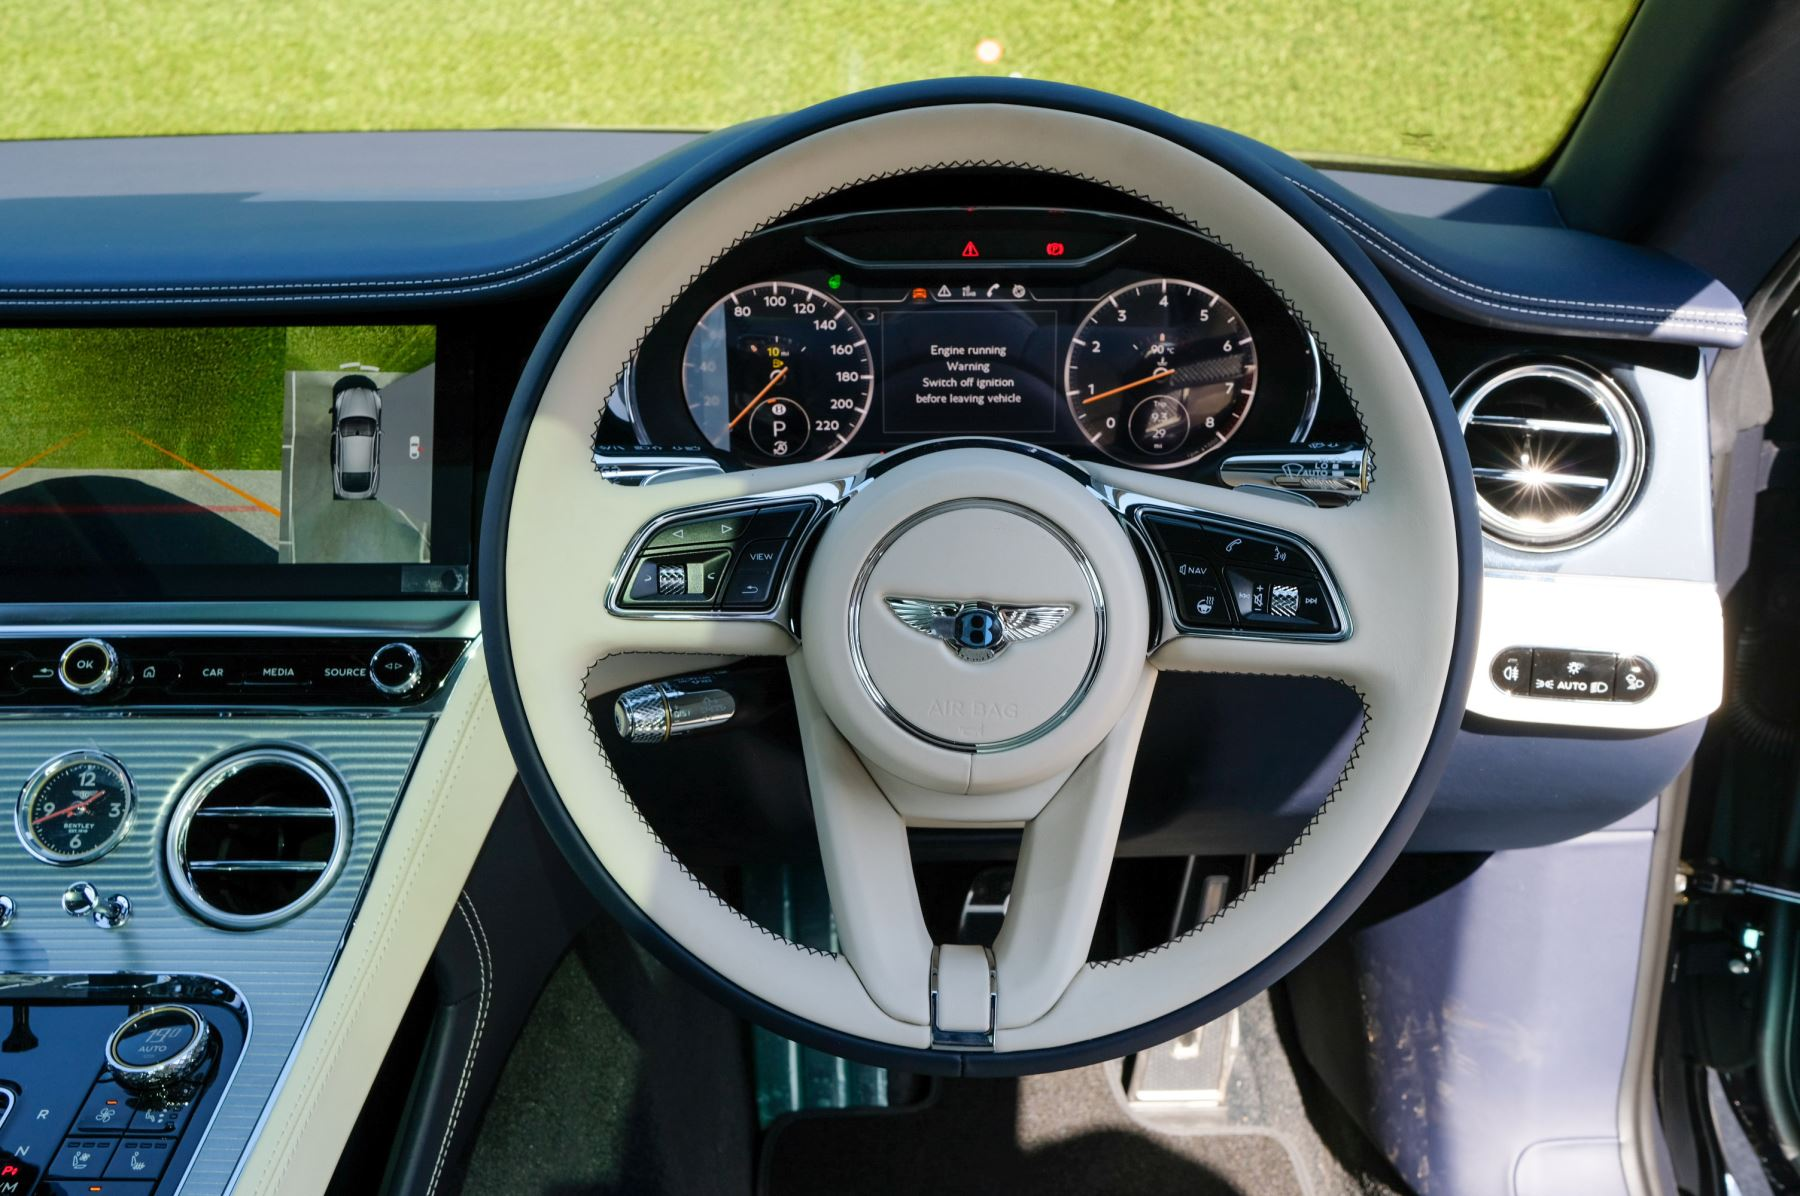 Bentley Continental GT 4.0 V8 Mulliner Edition 2dr Auto - City Specification - Panoramic Glass Roof image 13